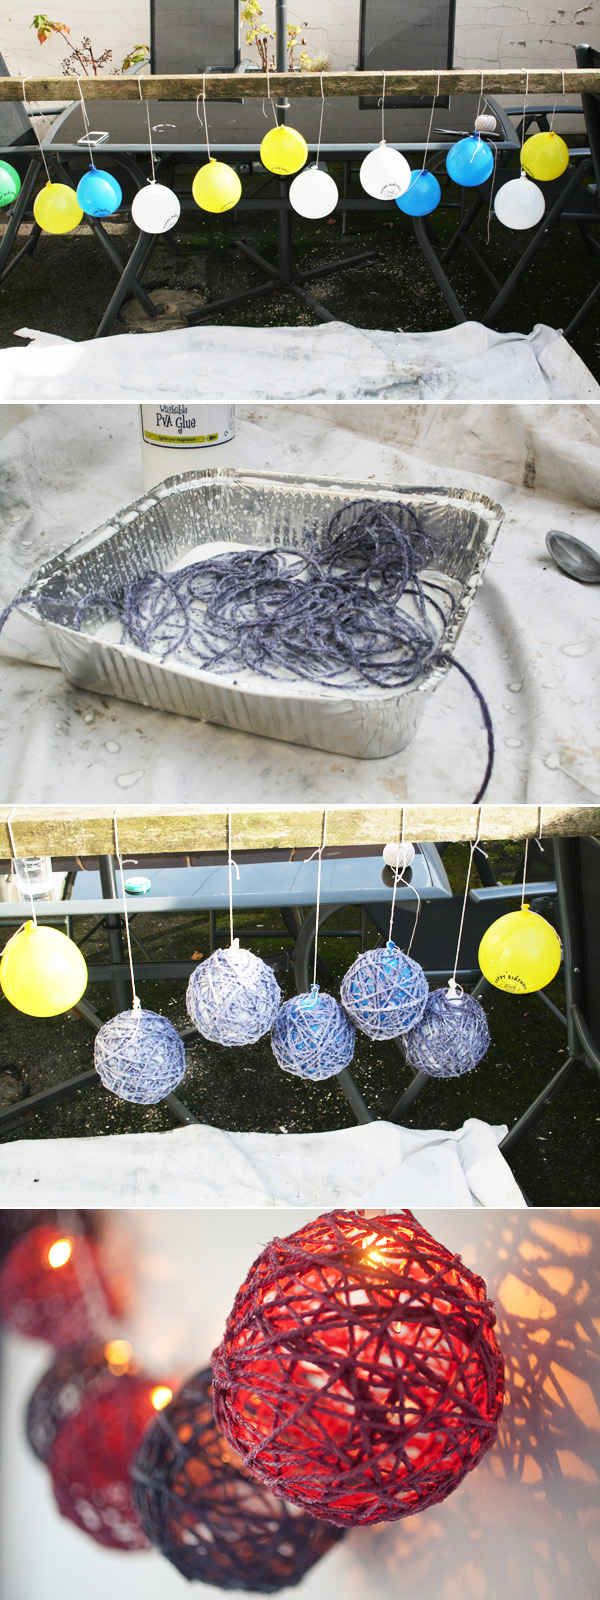 Create colorful twine balls to encase the lights.